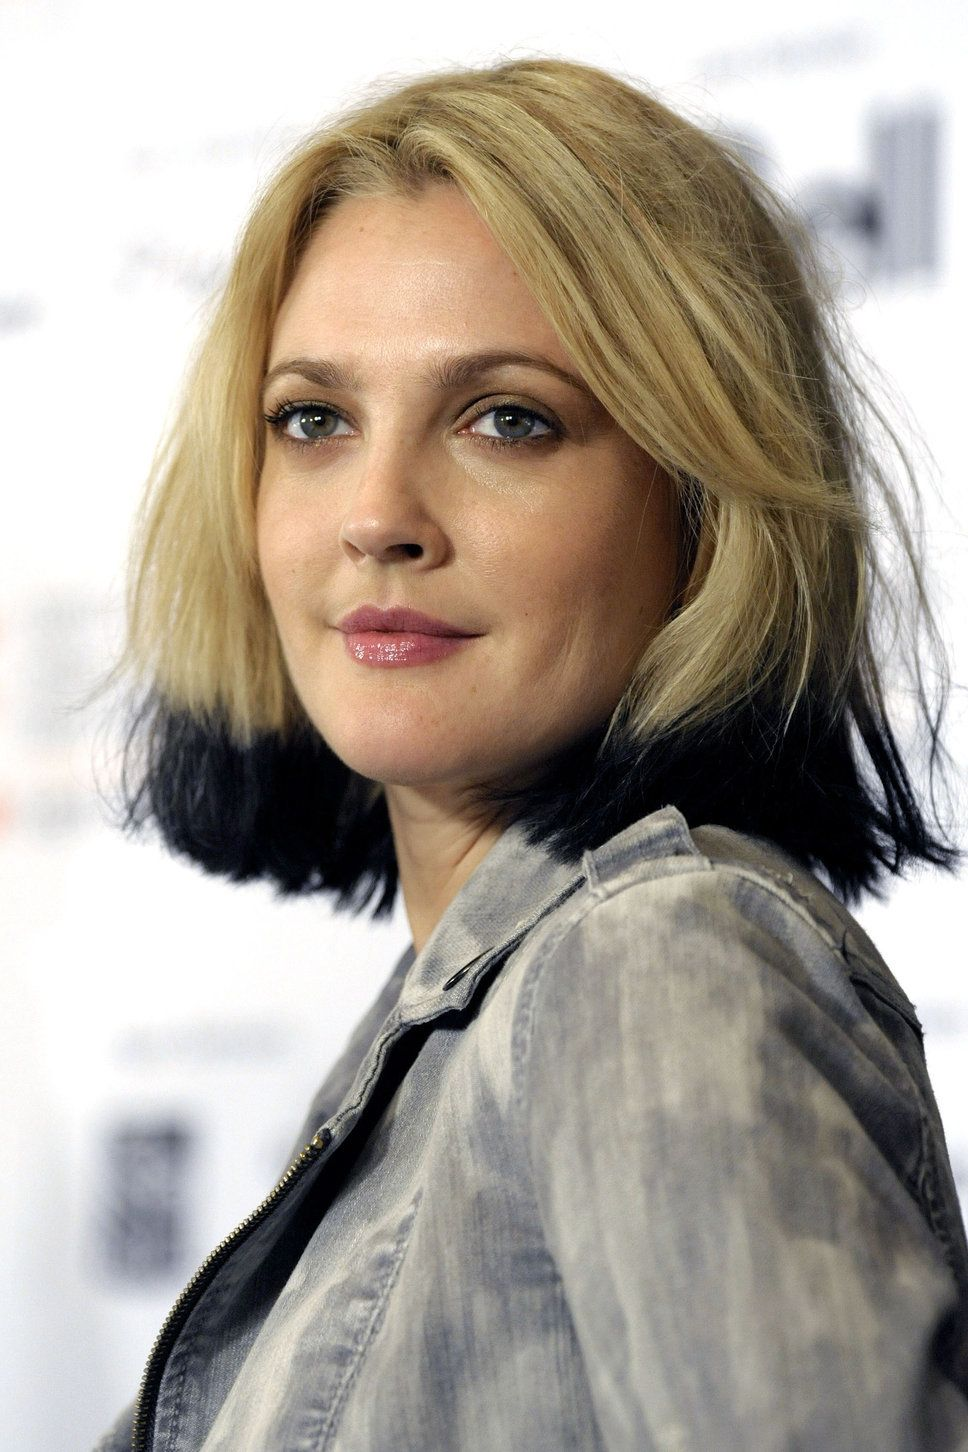 Drew Barrymore Black Tips Dip Dye Blonde And Black Hair 968 1452